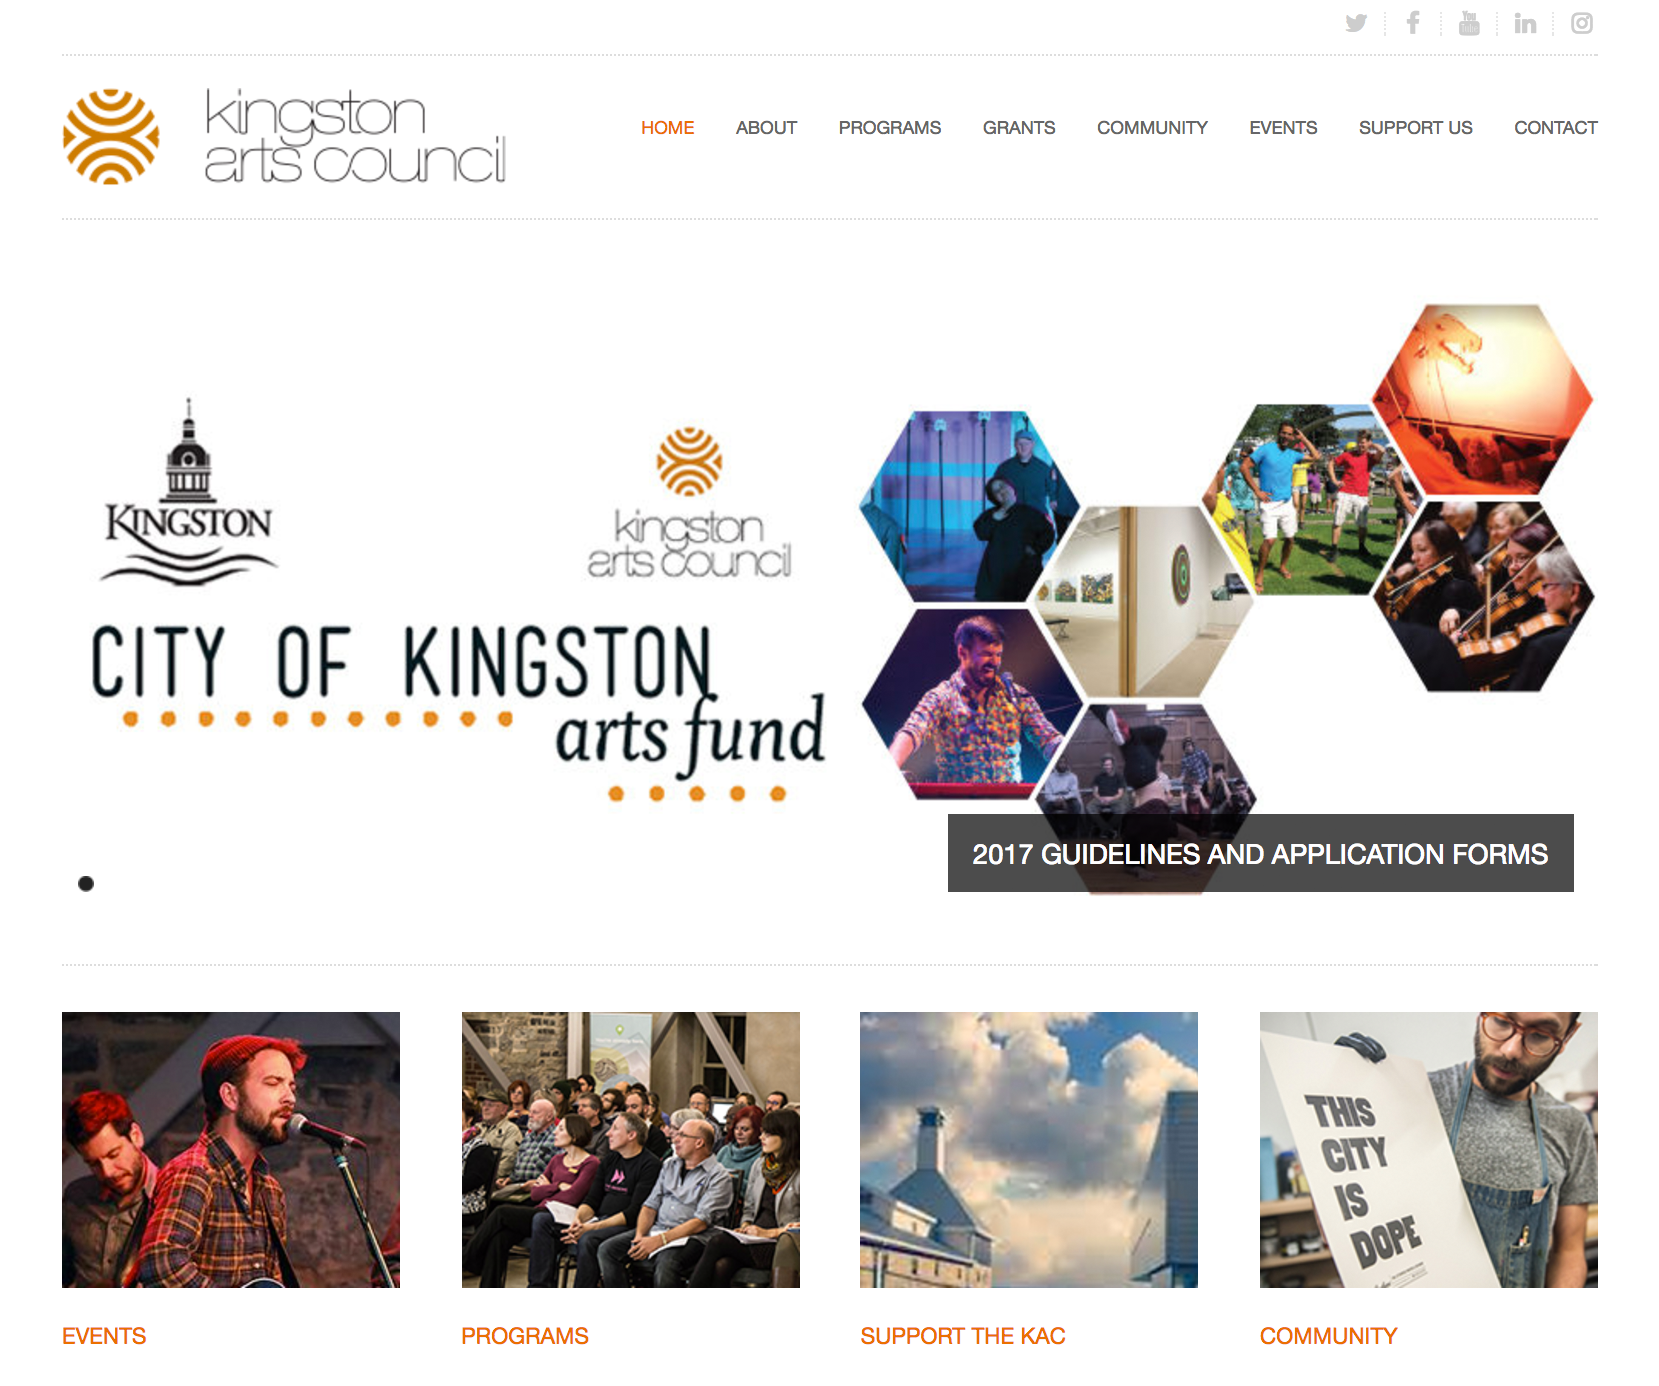 Kingston Arts Council Website Redesign